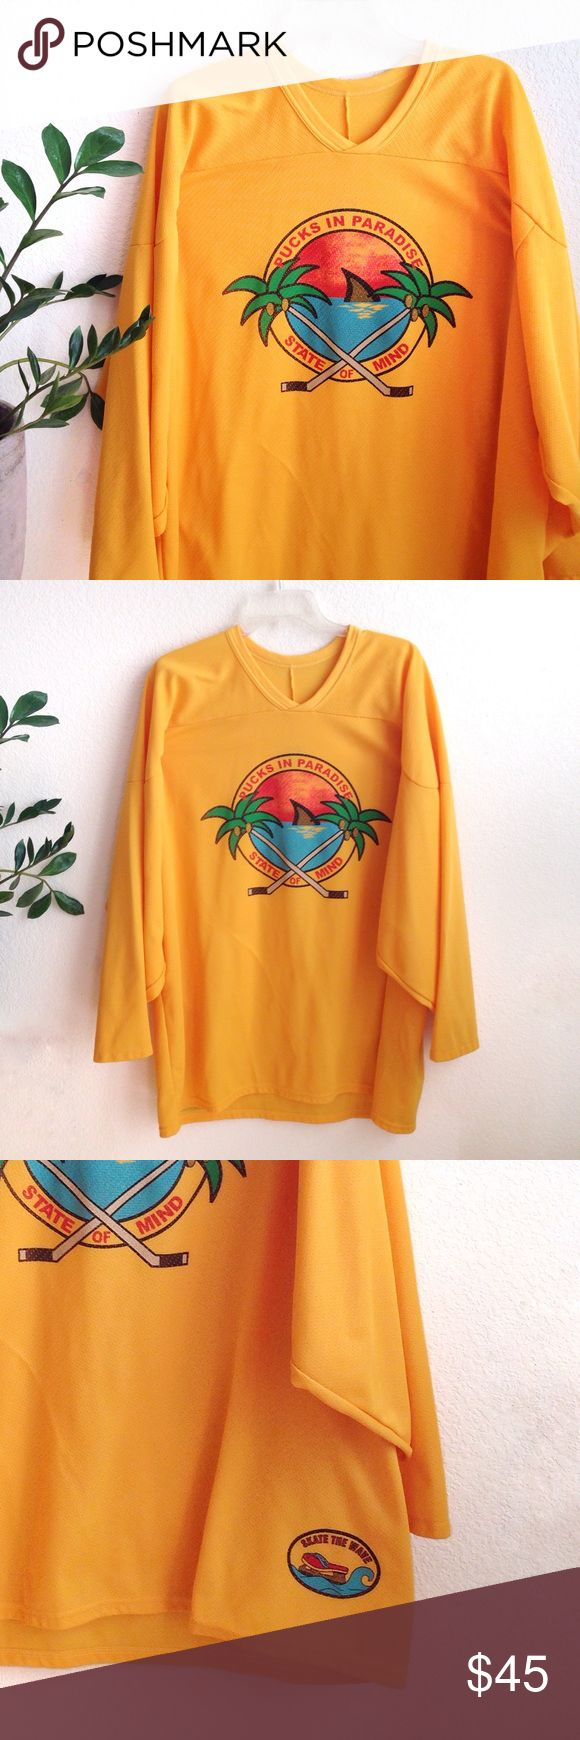 """VTG🌴70s Rad Pucks in Paradise Hockey Jersey! AMAZING! Super bright & rad oversized hockey jersey. Features groovy, pop art style Pucks in Paradise beach graphic on front with waves, sand, palm trees and hockey sticks 😝 """"Skate the Wave"""" graphic on lower right side. Very 60's style art theme going on here. Made by world-renowned Canadian hockey jersey company CCM. In flawless condition! Men's XL, but can fit on literally anyone. Unisex item! 🌴🏄🌴 Oilers Penguins Canadiens Red Wings…"""